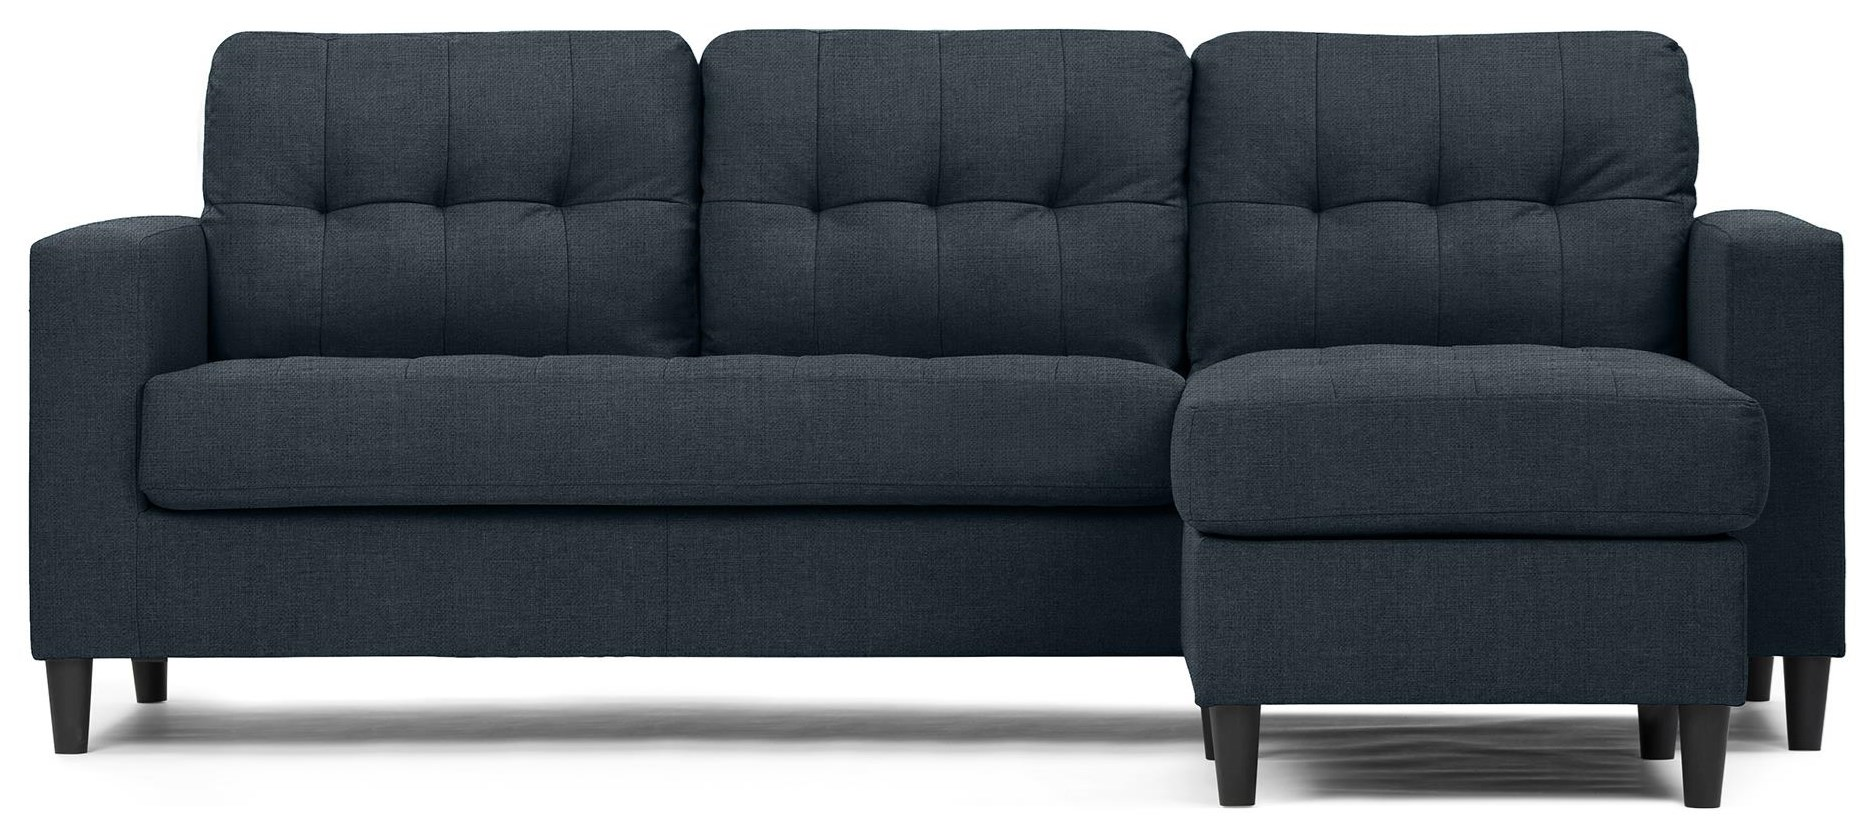 Tyler Sofa with Floating Ottoman at Bennett's Furniture and Mattresses